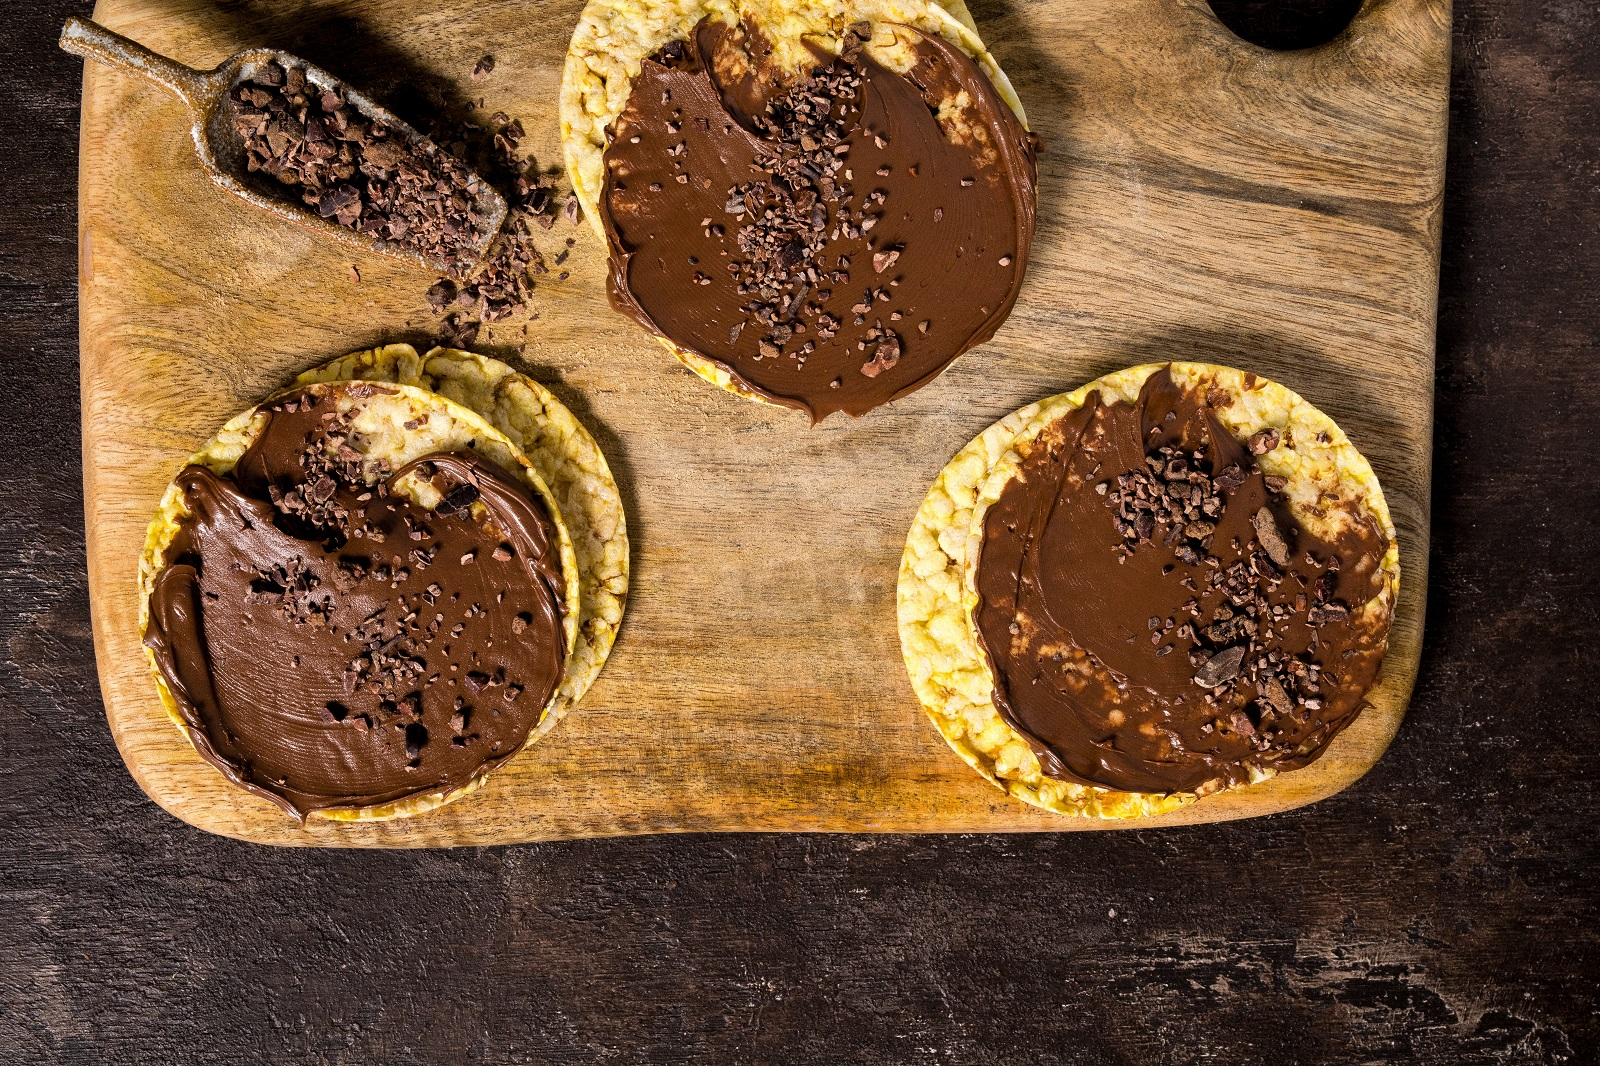 CORN THINS slices with Nutella & Cacao Nibs